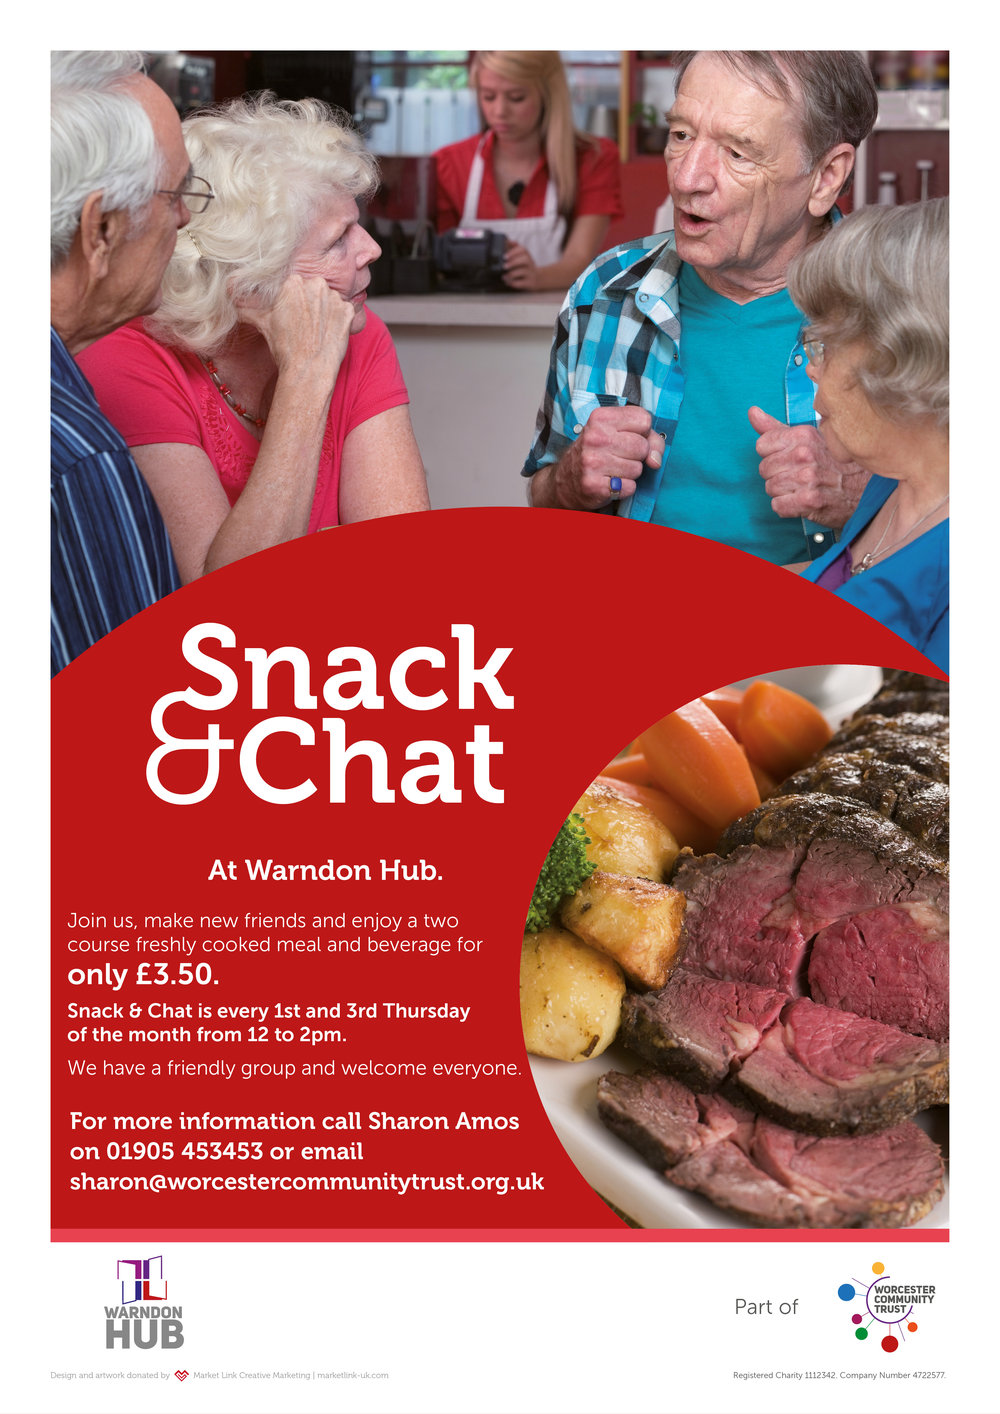 Snack & Chat posters5.jpg